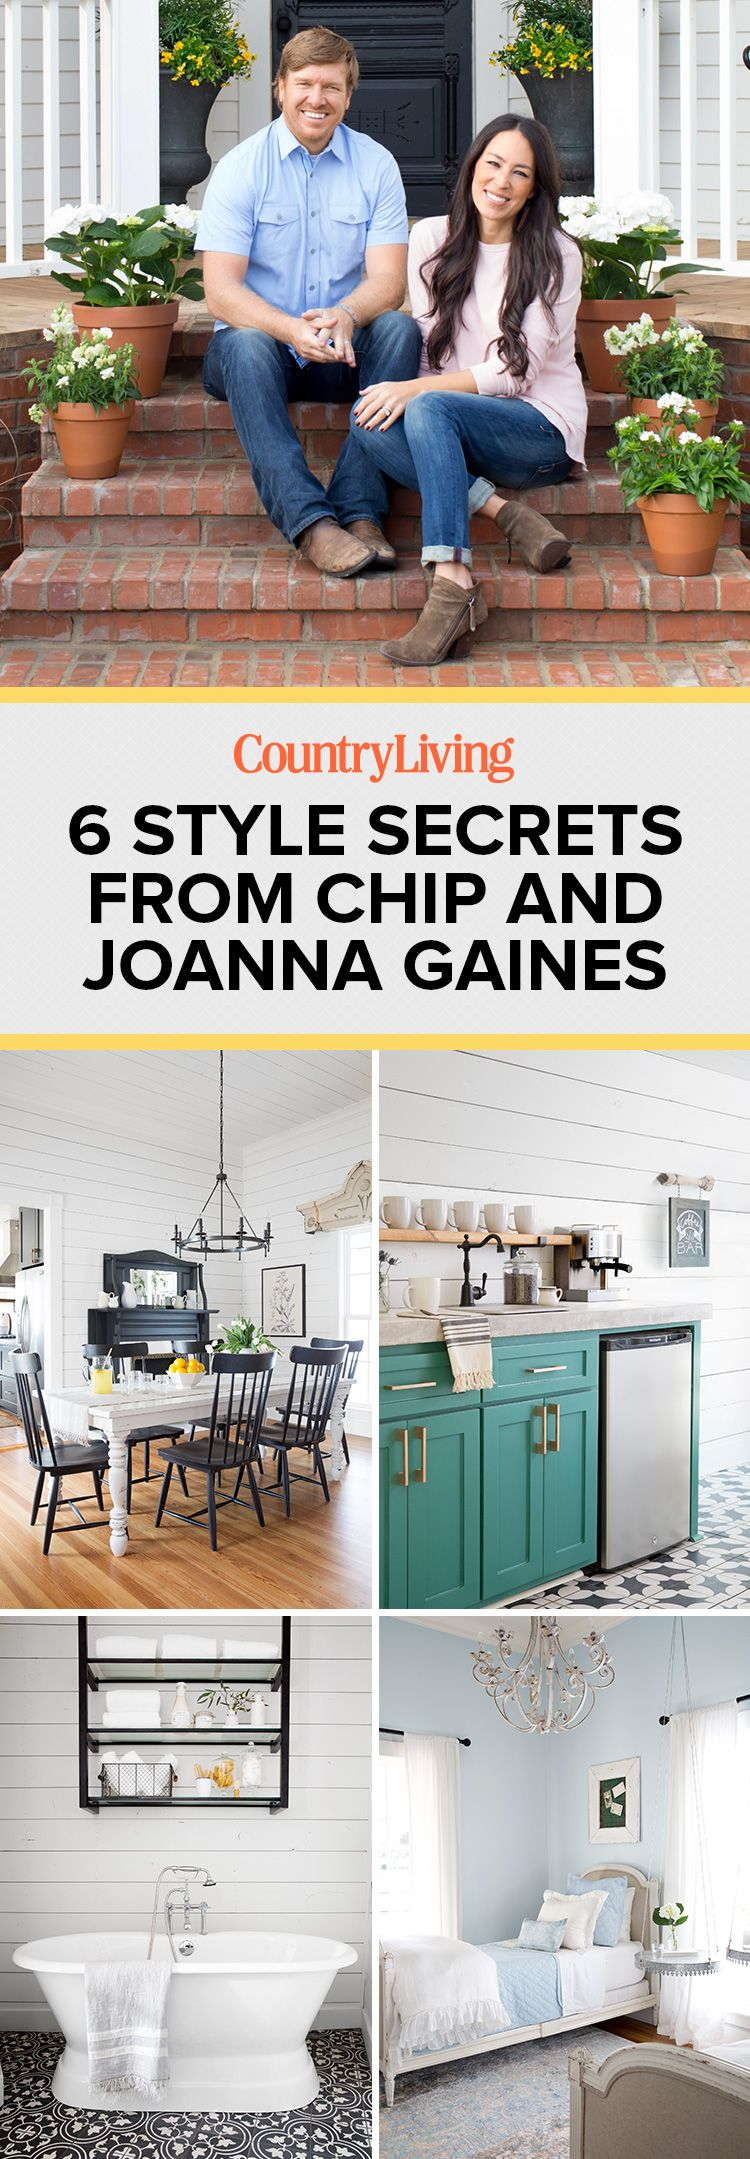 Fixer upper carriage house kitchen - Hgtv S Fixer Upper Carriage House Kitchen Hgtv Videos Pinterest Gray Carriage House And Gray Paint